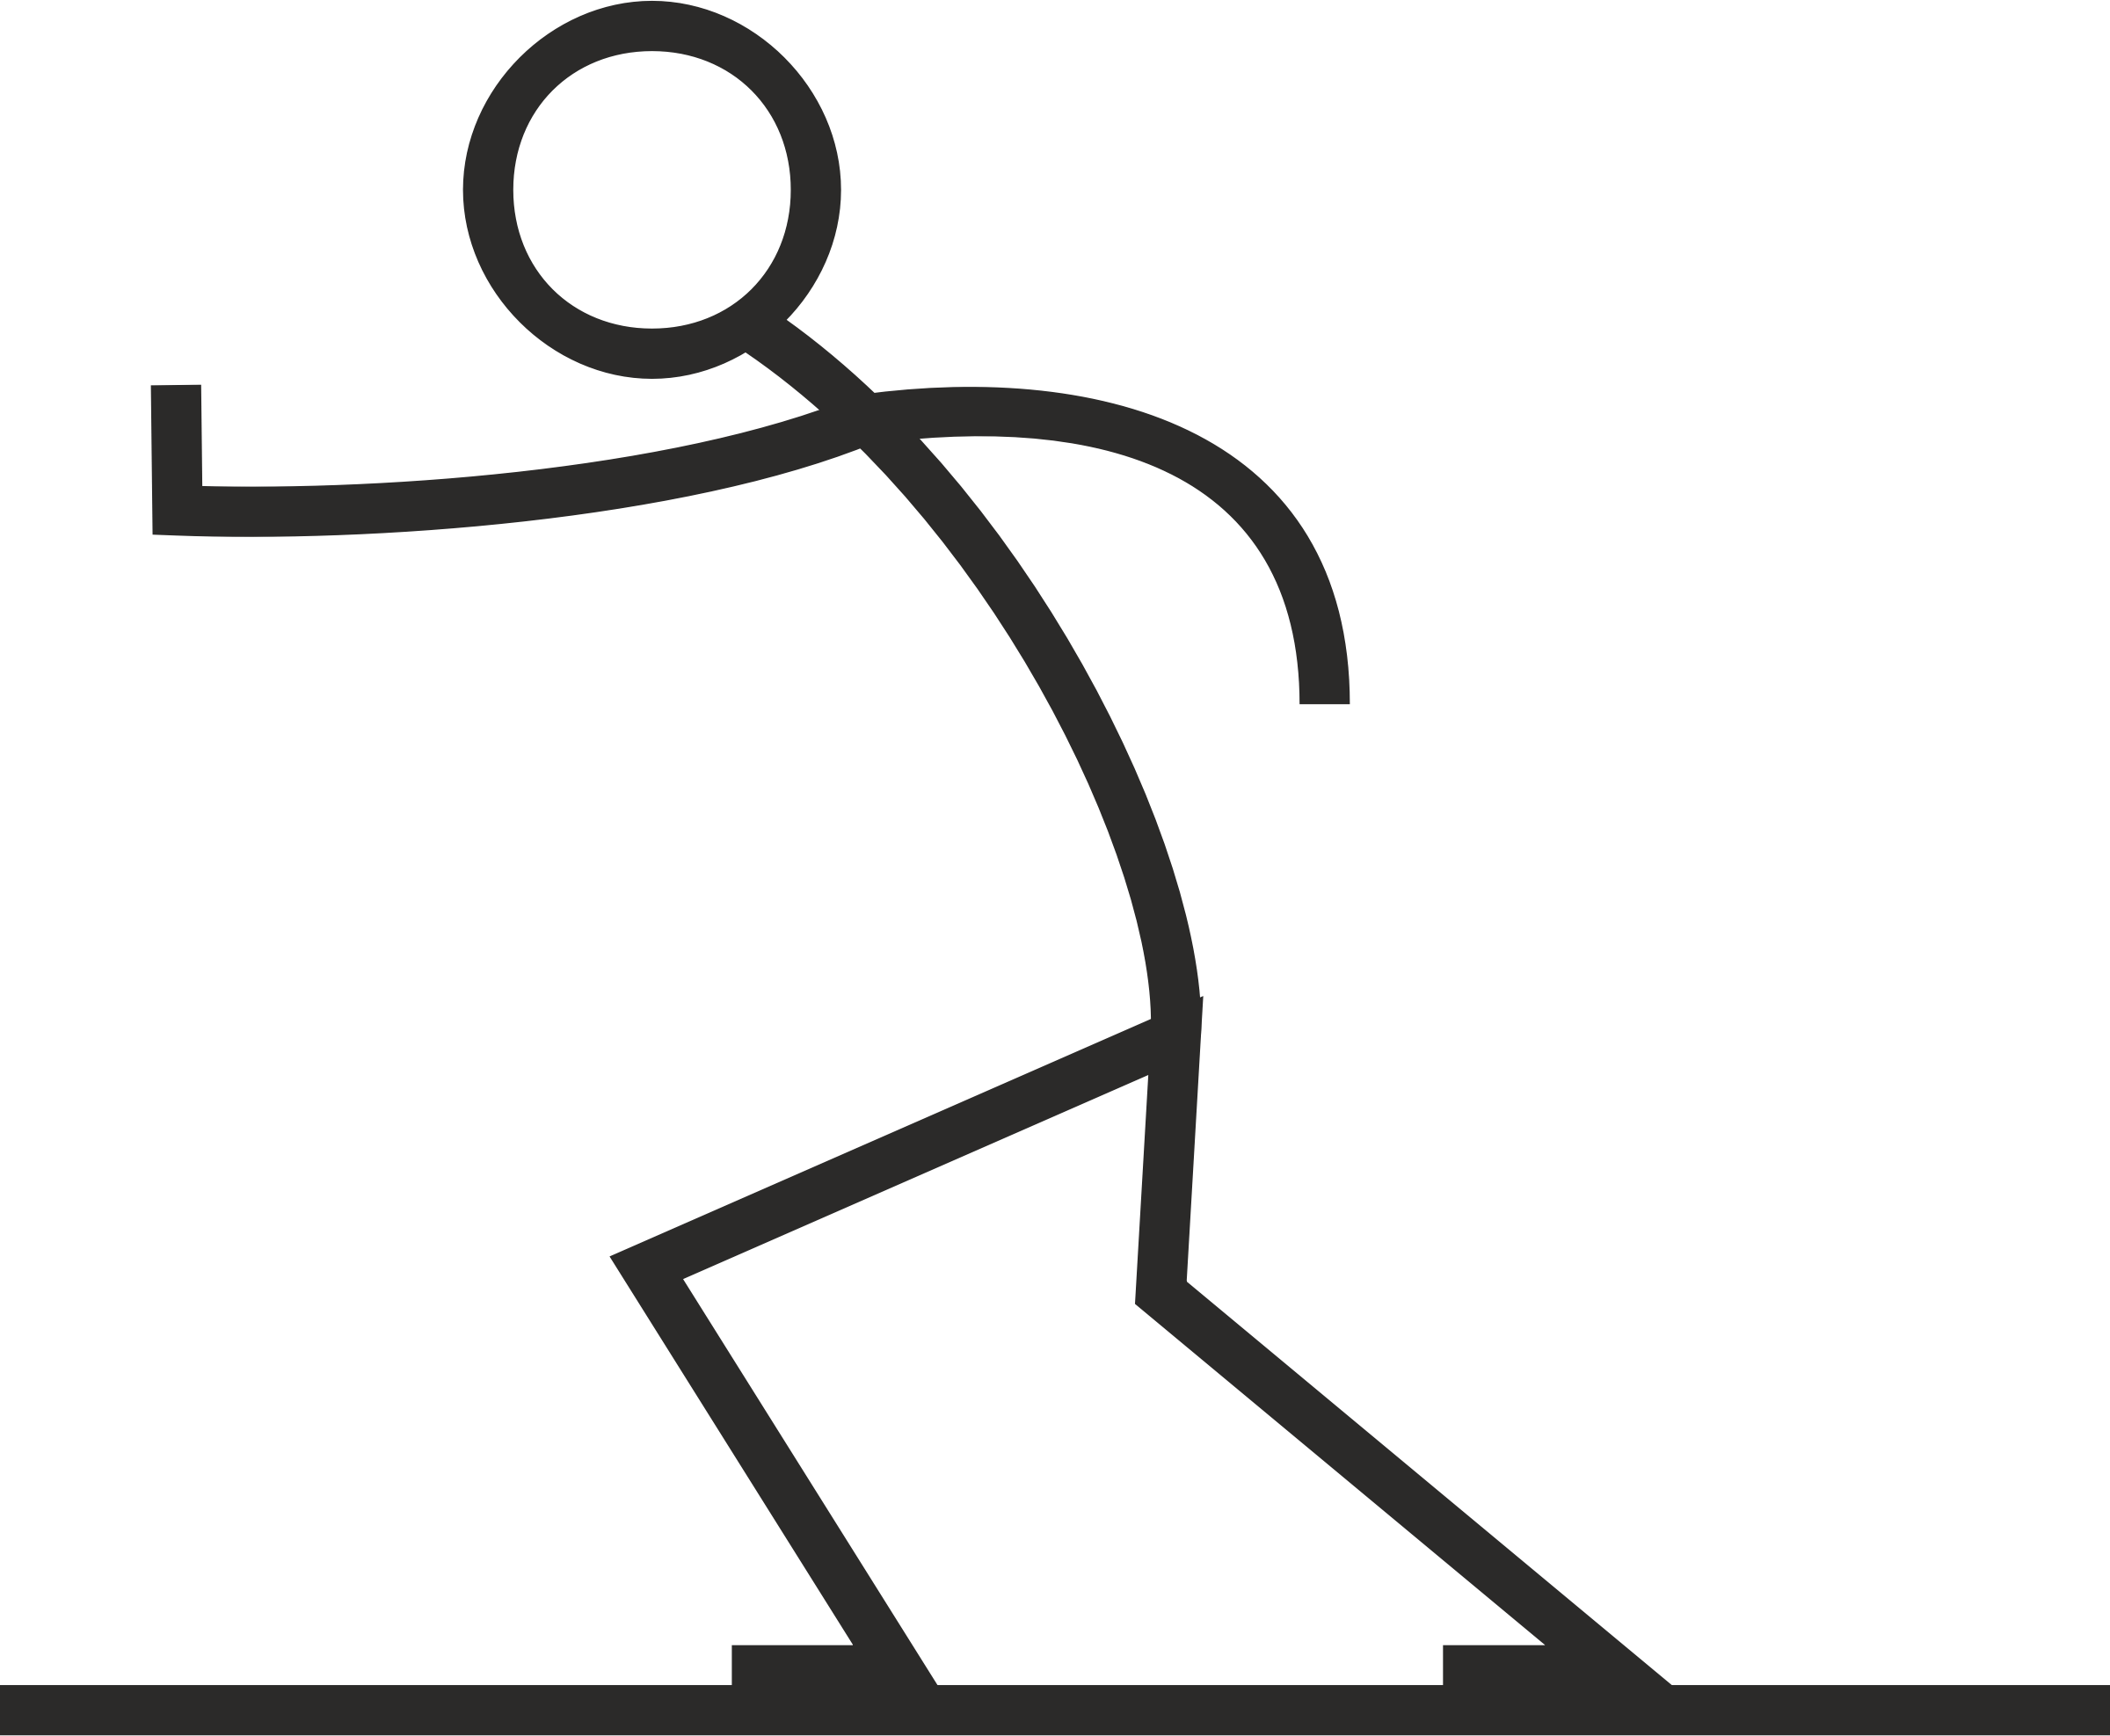 Stick figure dog clipart png library library Running Stick Figure Group (67+) png library library